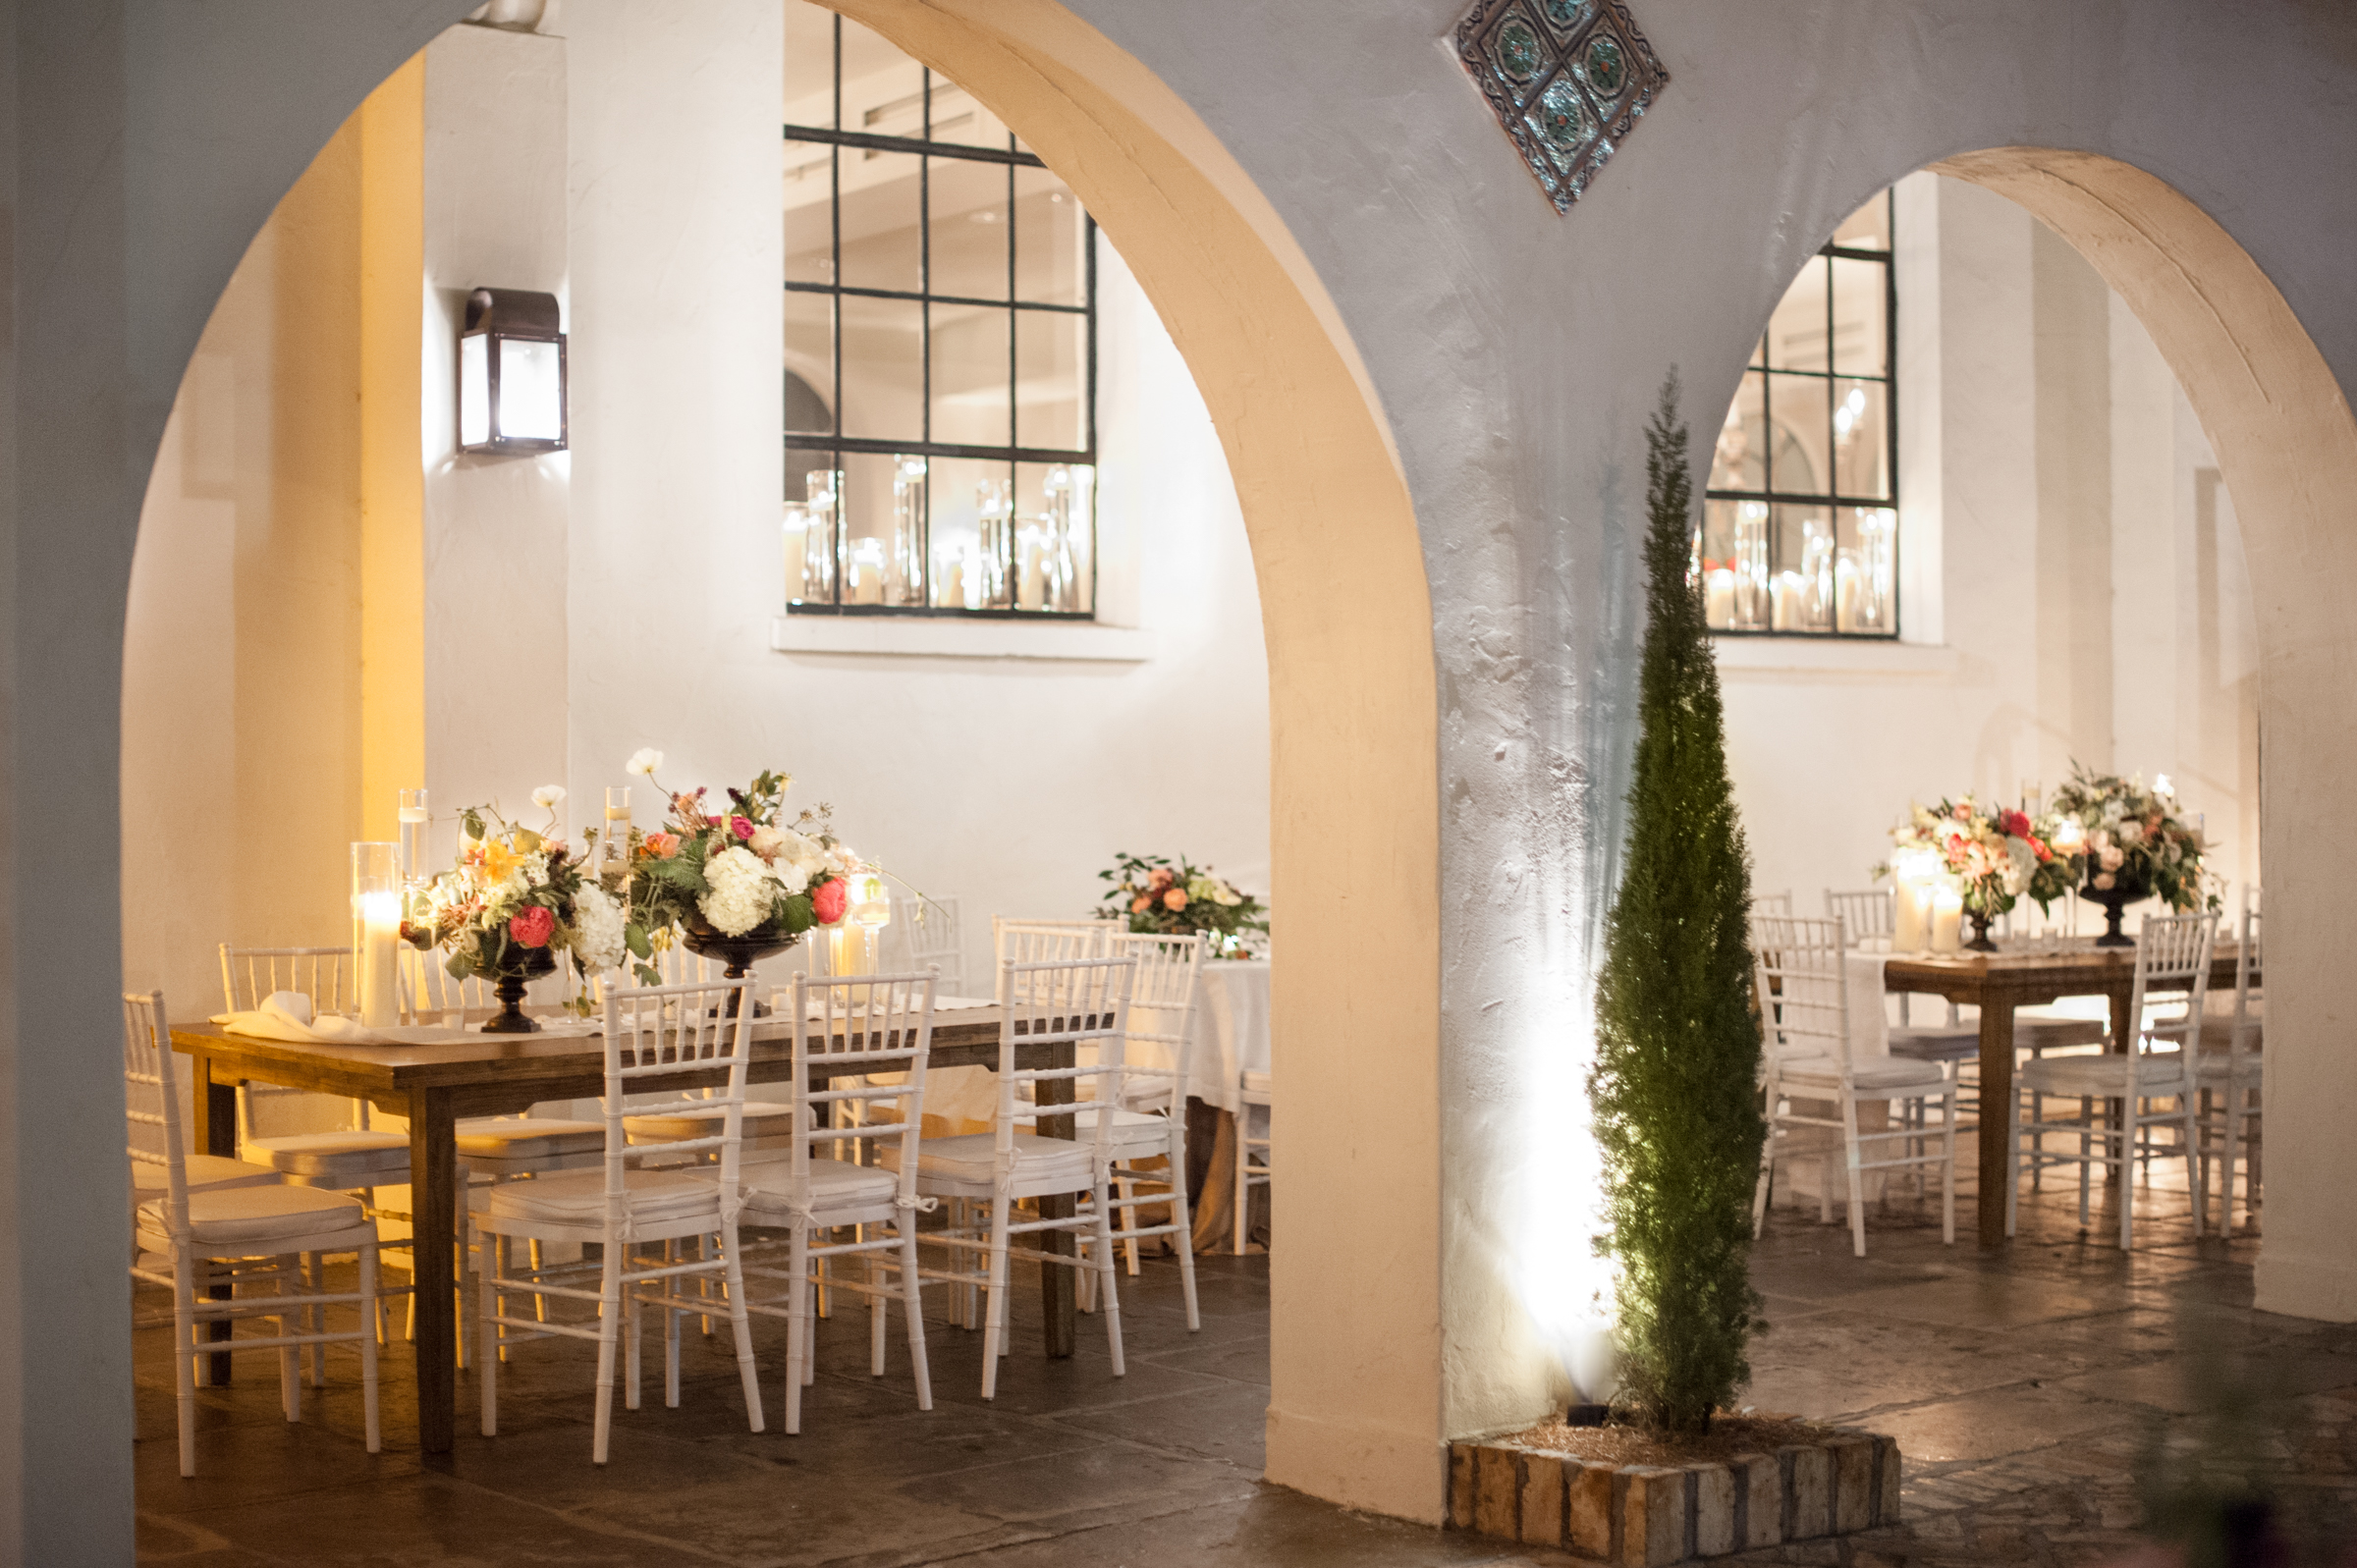 Romantic Candlelit Courtyard Wedding - Elizabeth Dondis Photography